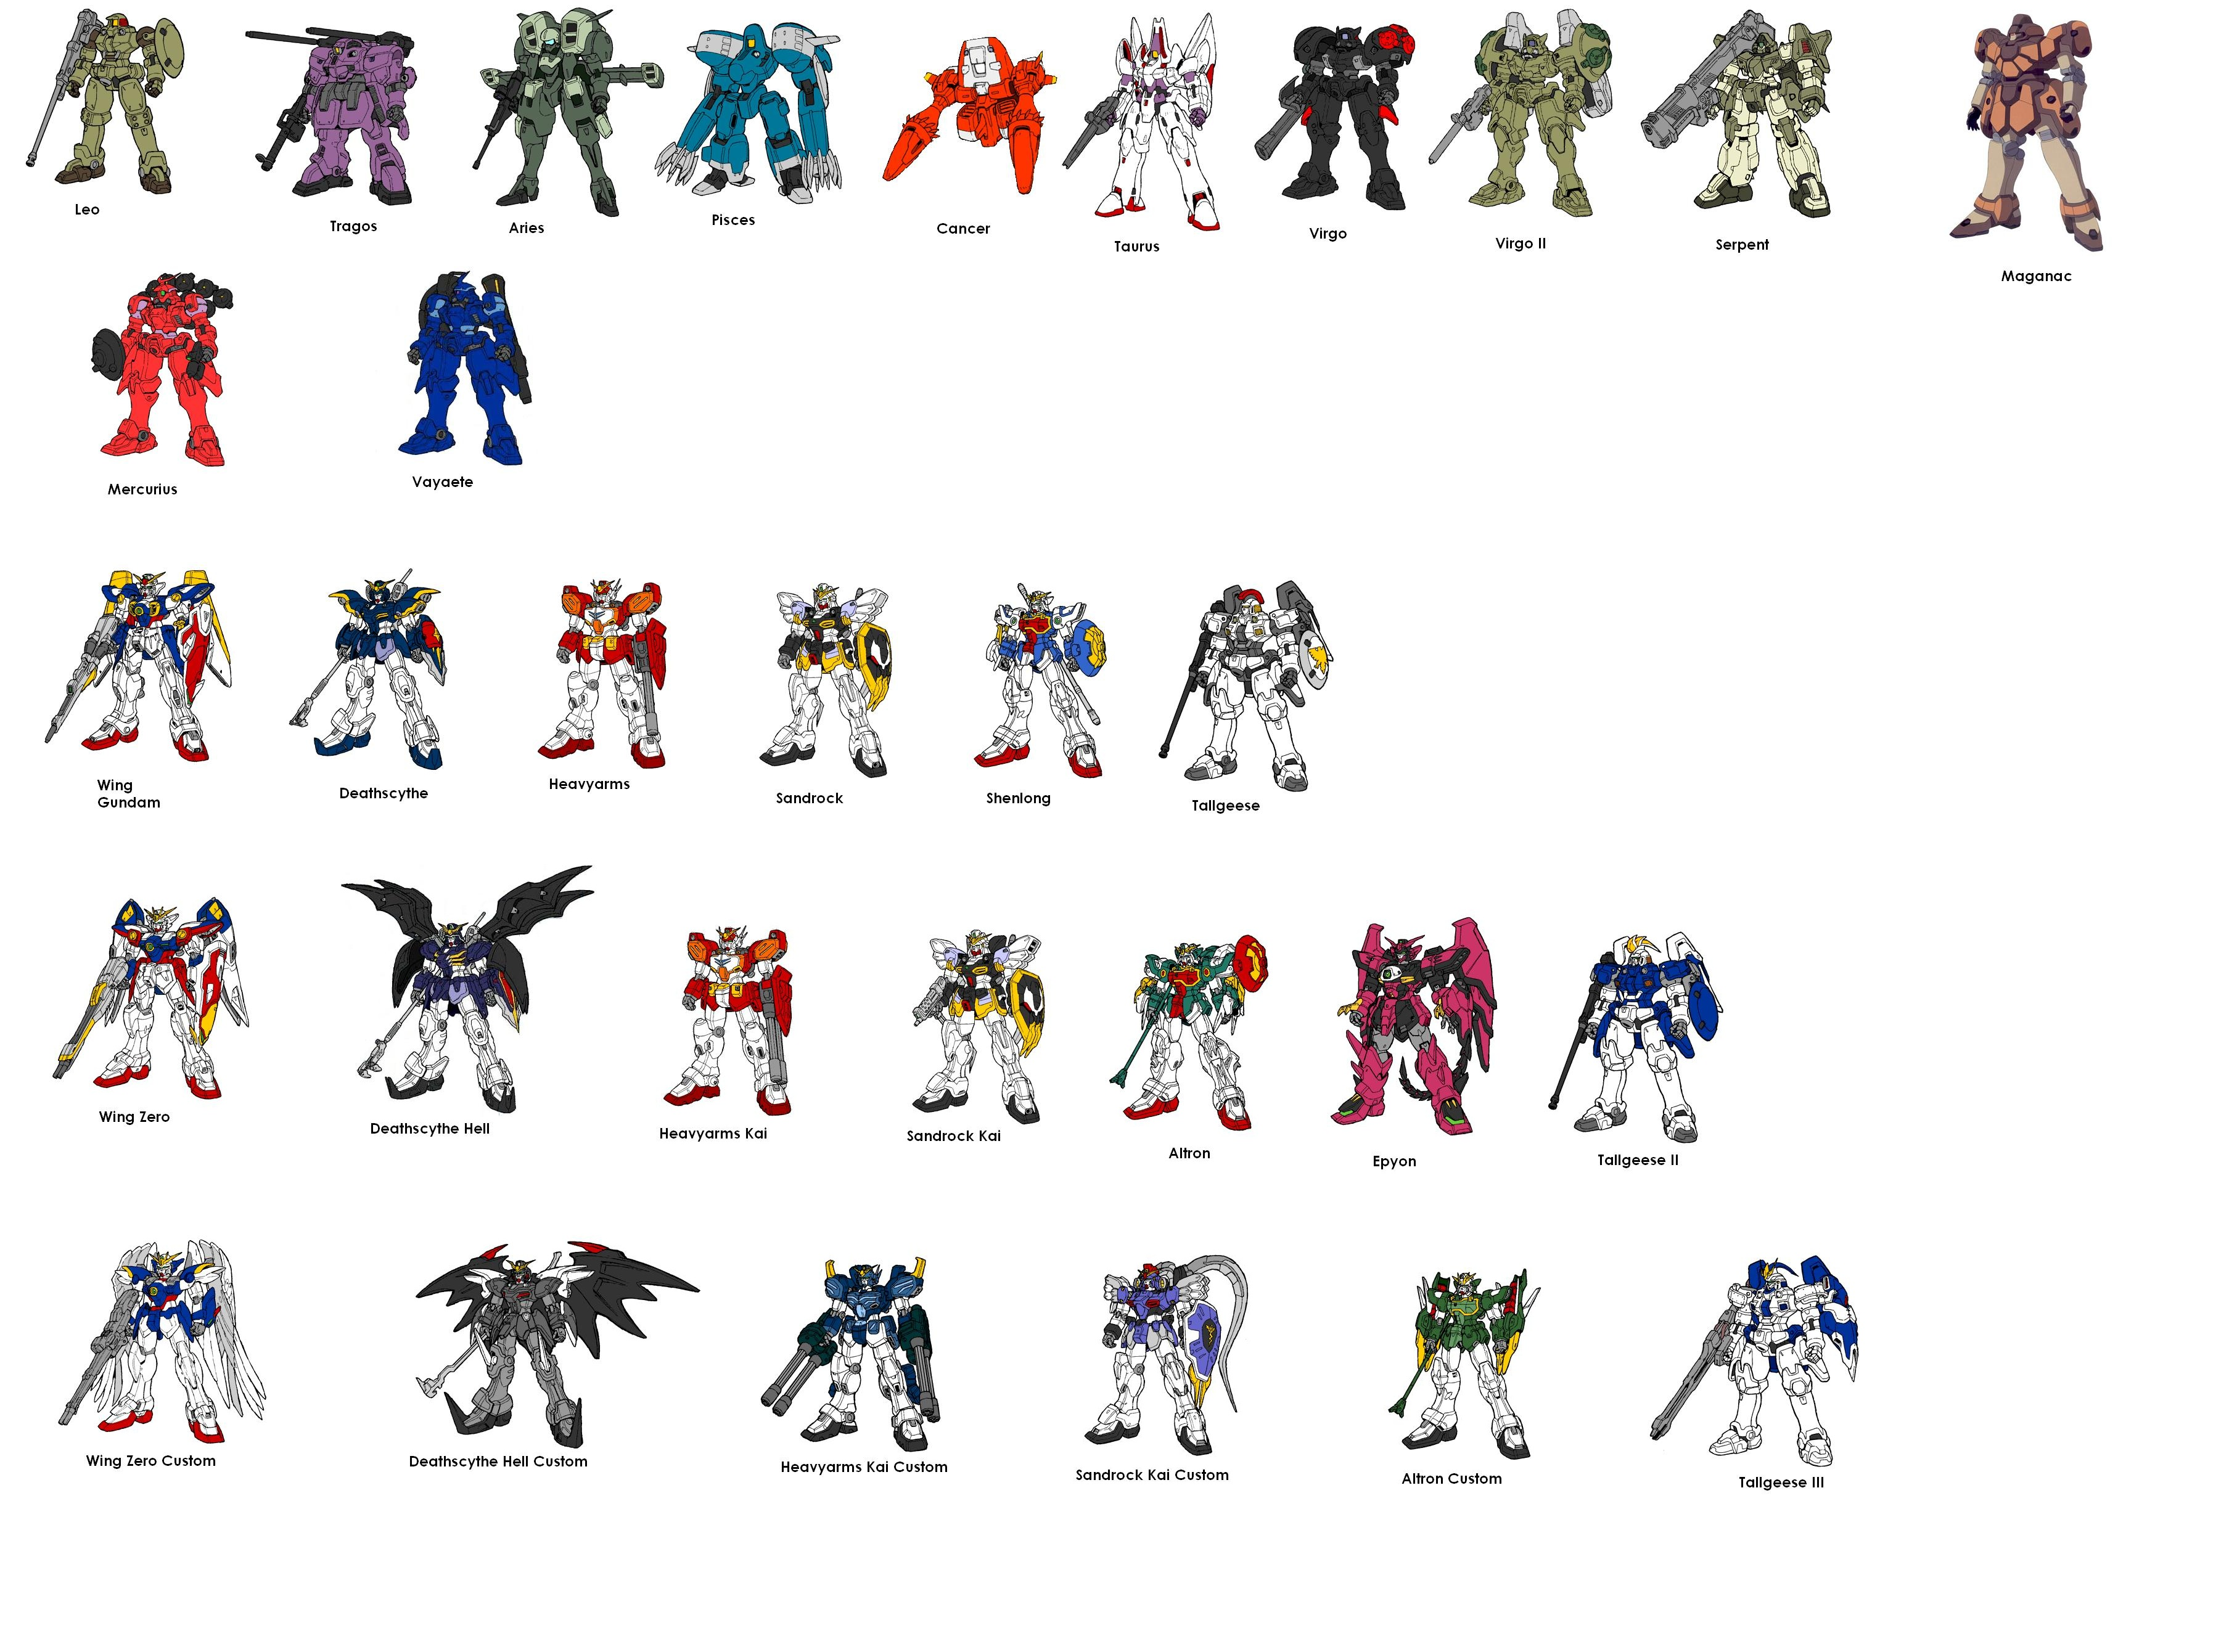 Gundam Wing Every Mobile Suit by Wing Zero Alchemist 3628x2680